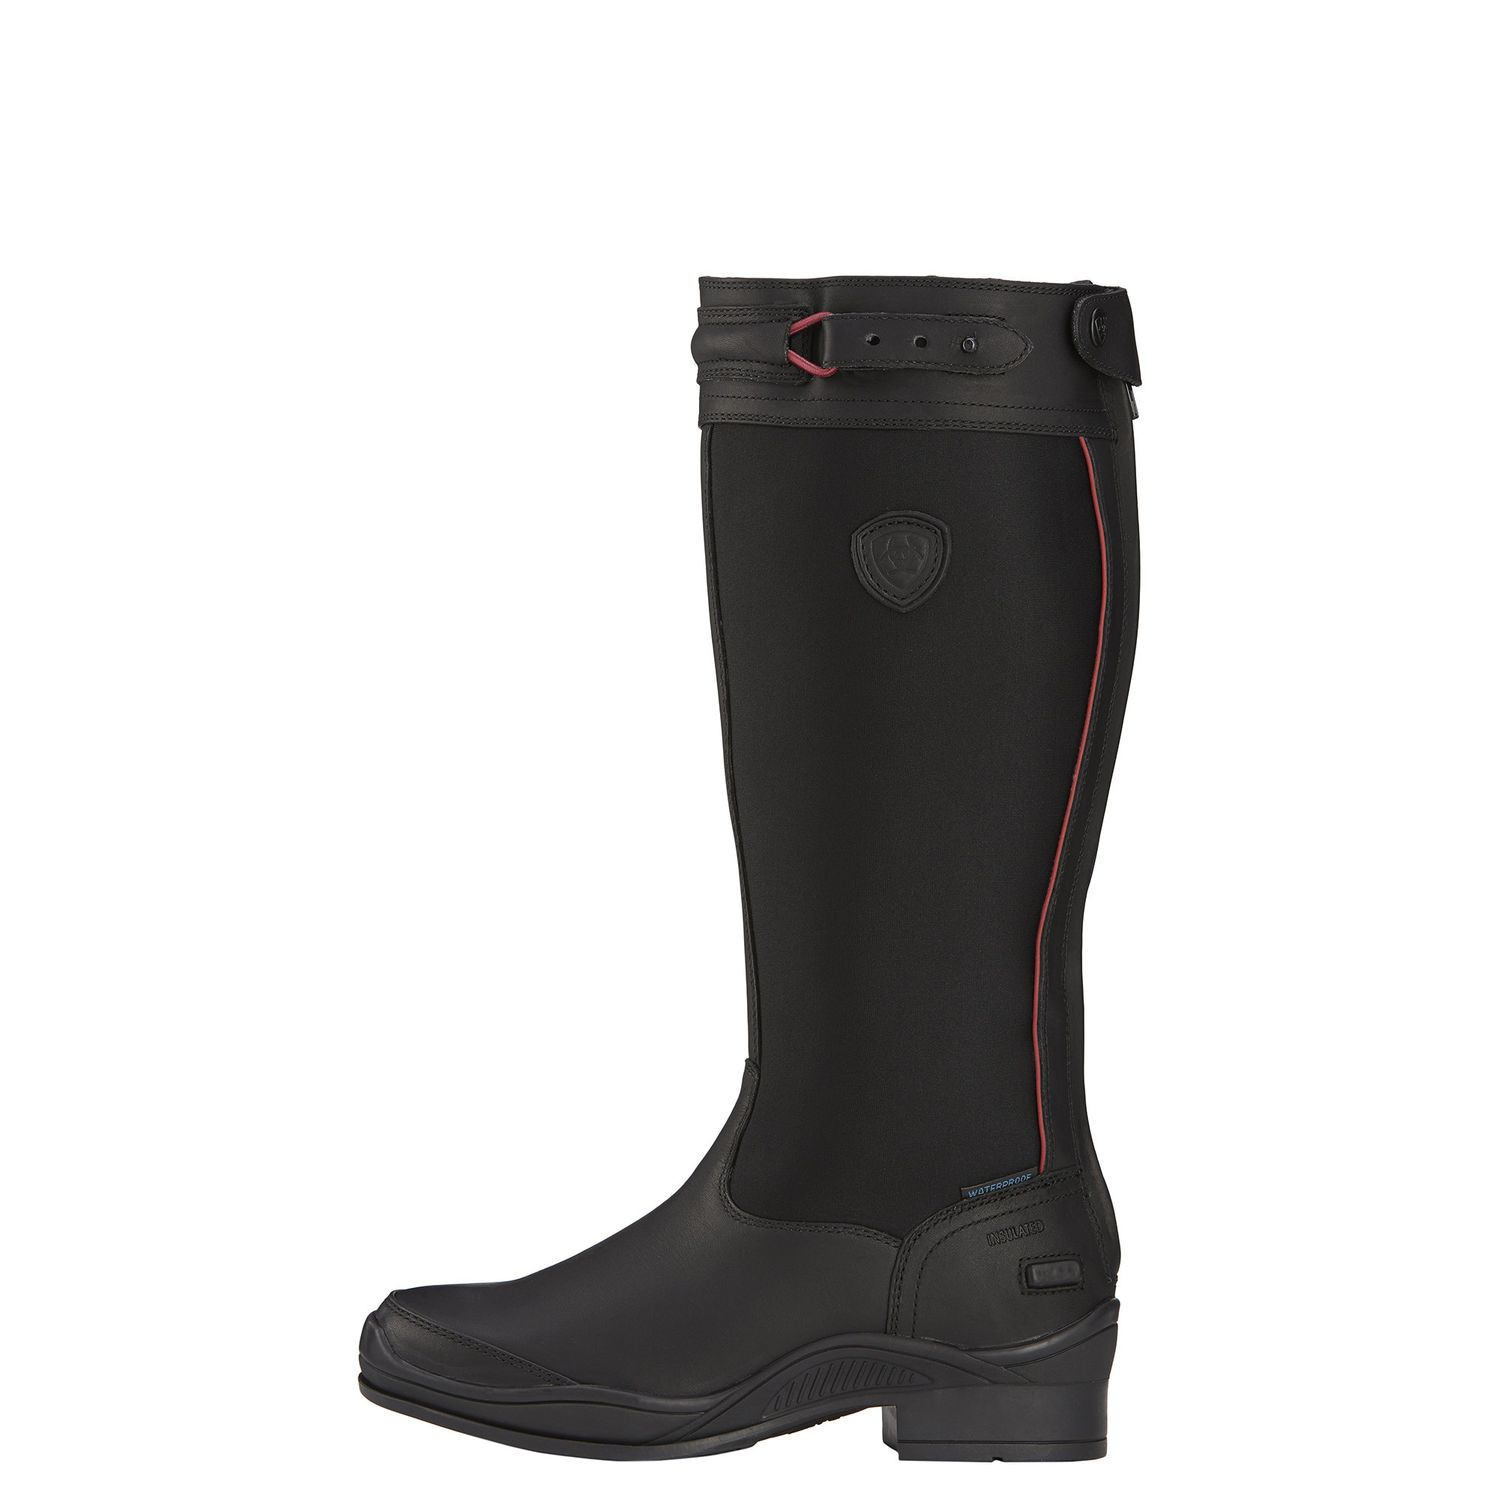 Bottes isolées Extreme Tall H2O